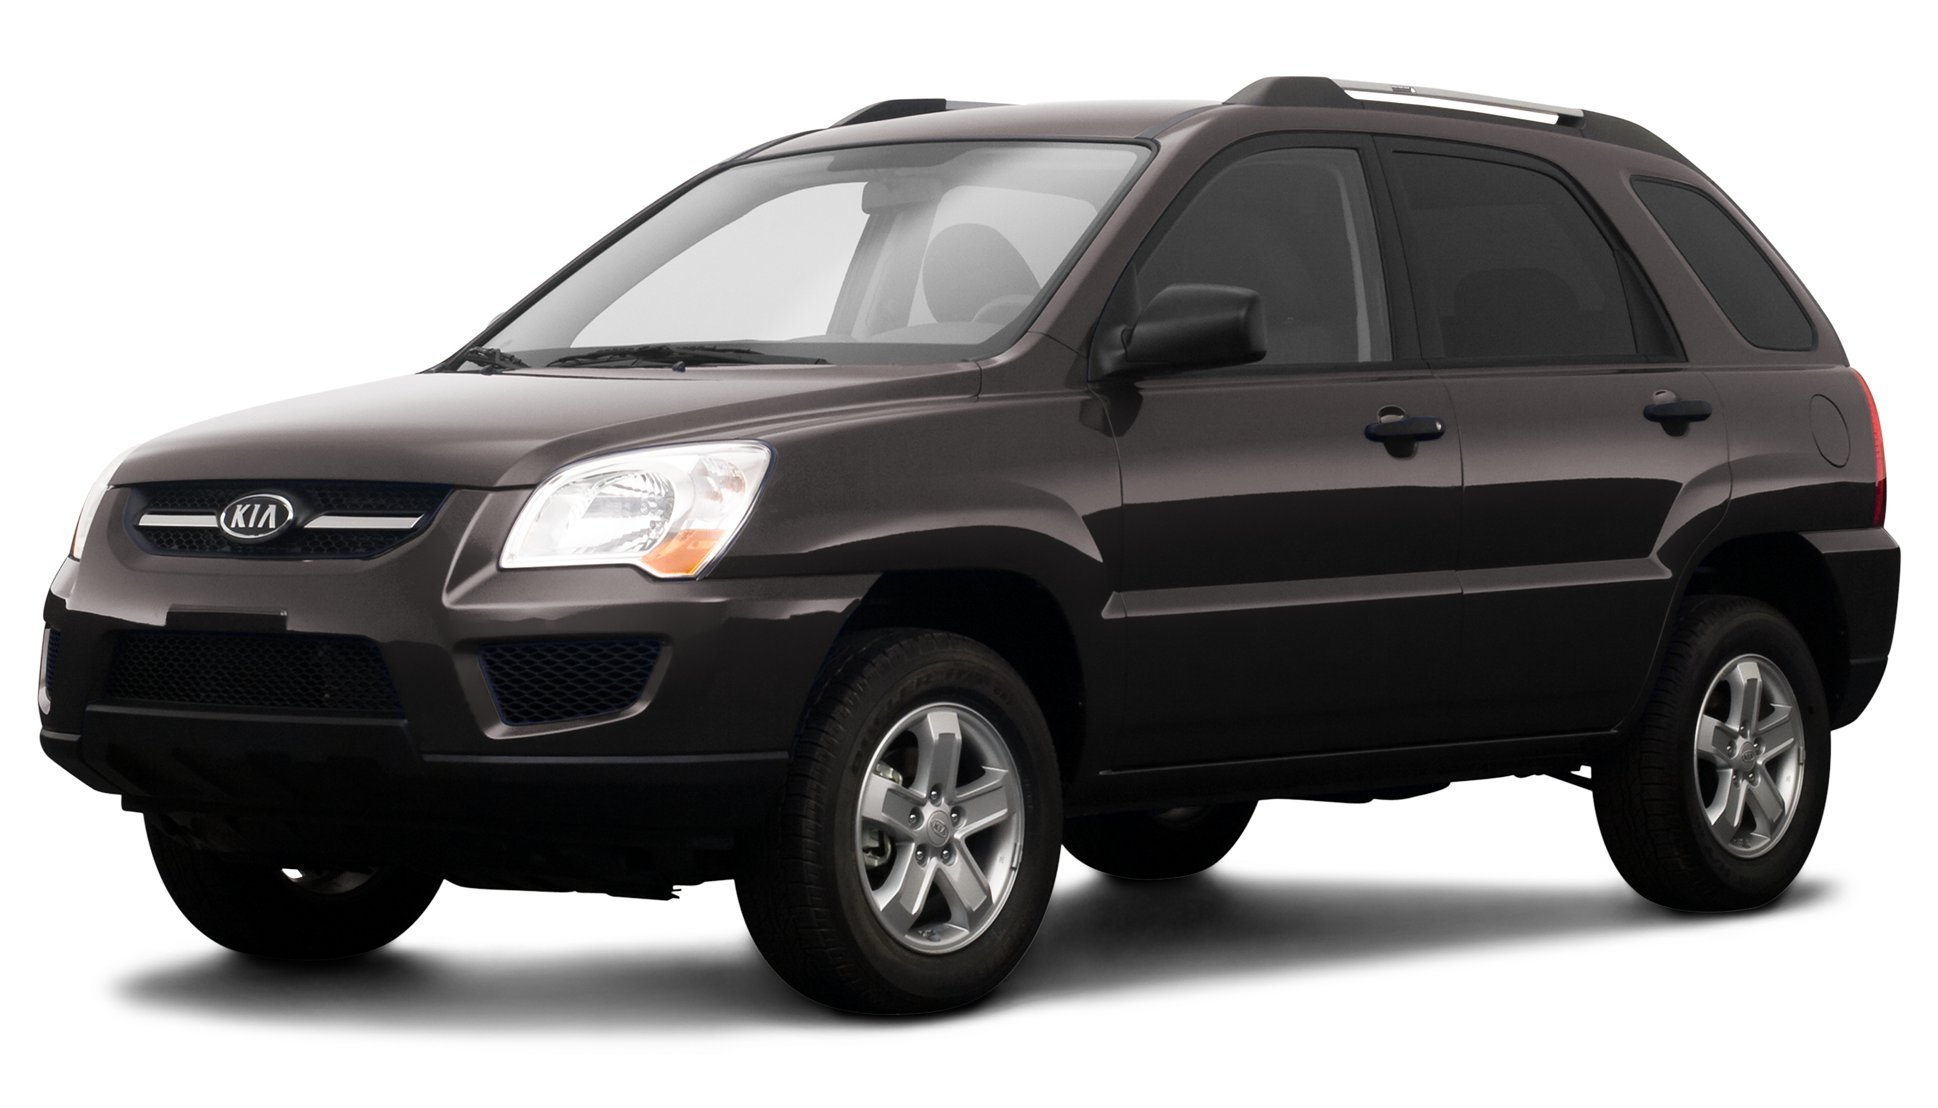 Amazon.com: 2009 Dodge Journey Reviews, Images, and Specs ... on